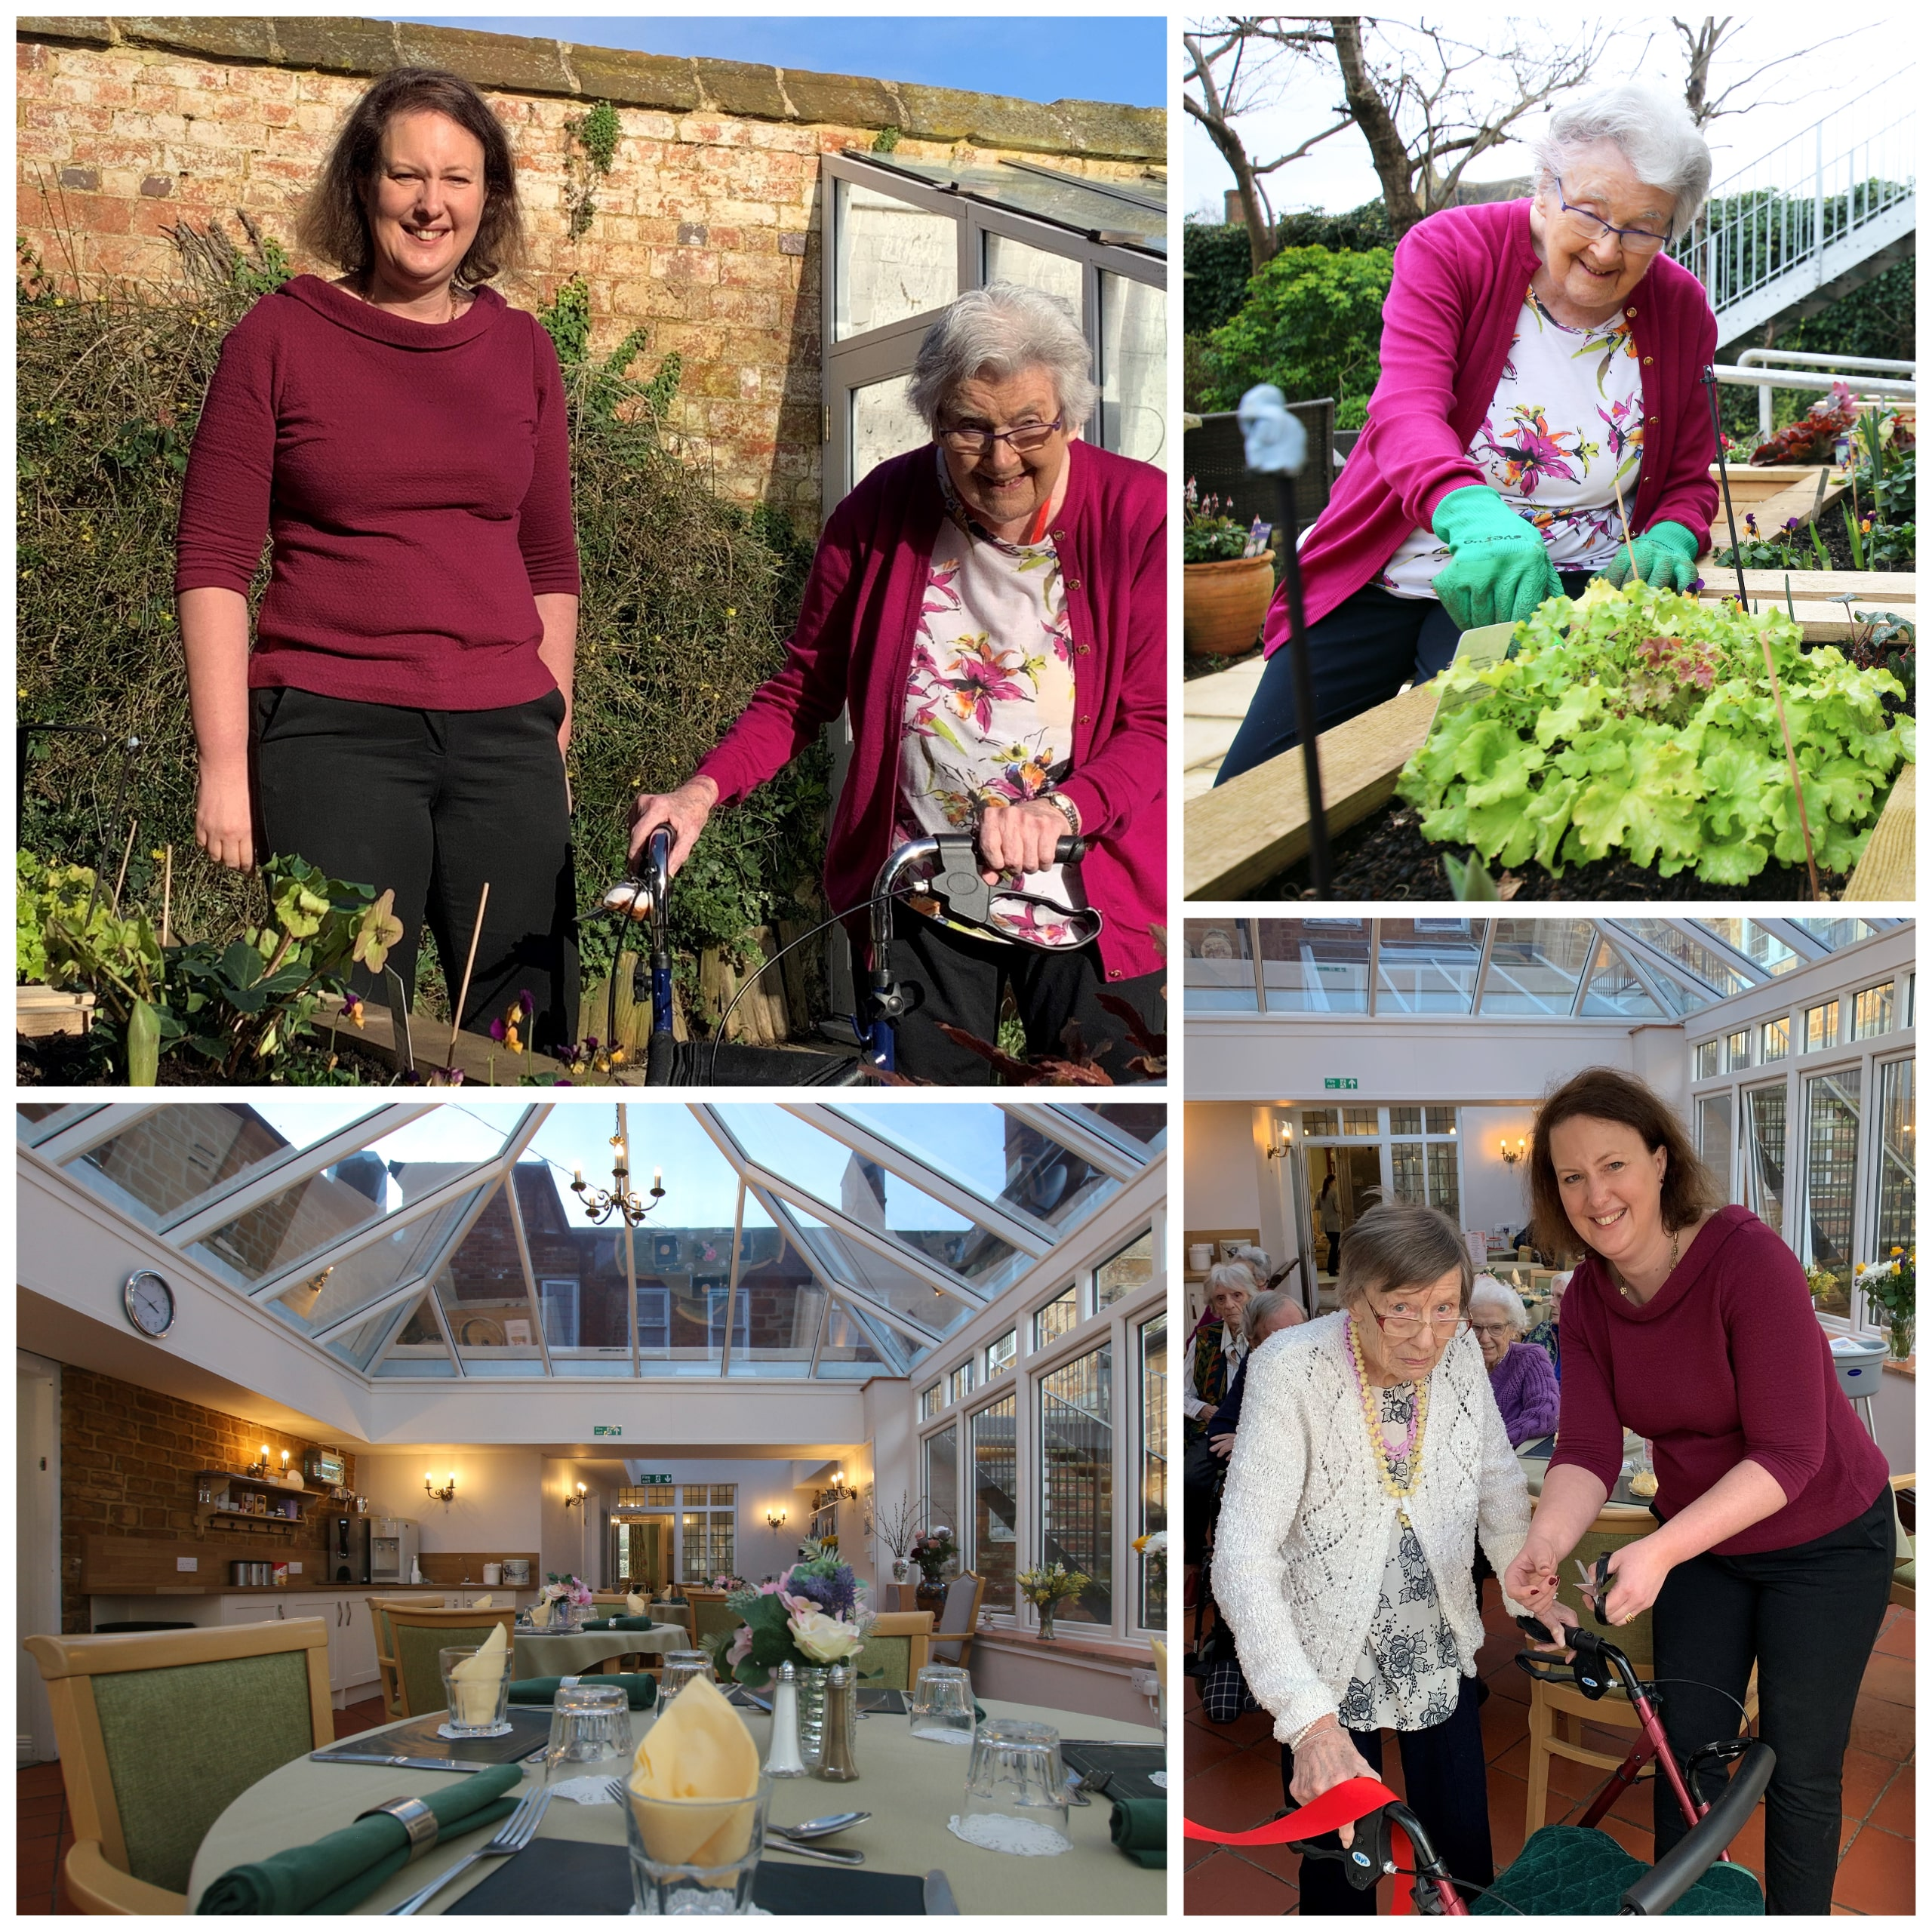 Residents Joan Hearmon, 99, and Edna Sewell, 94, join Victoria Prentis, MP for Banbury, on a tour of the Featherton House refurbishments.